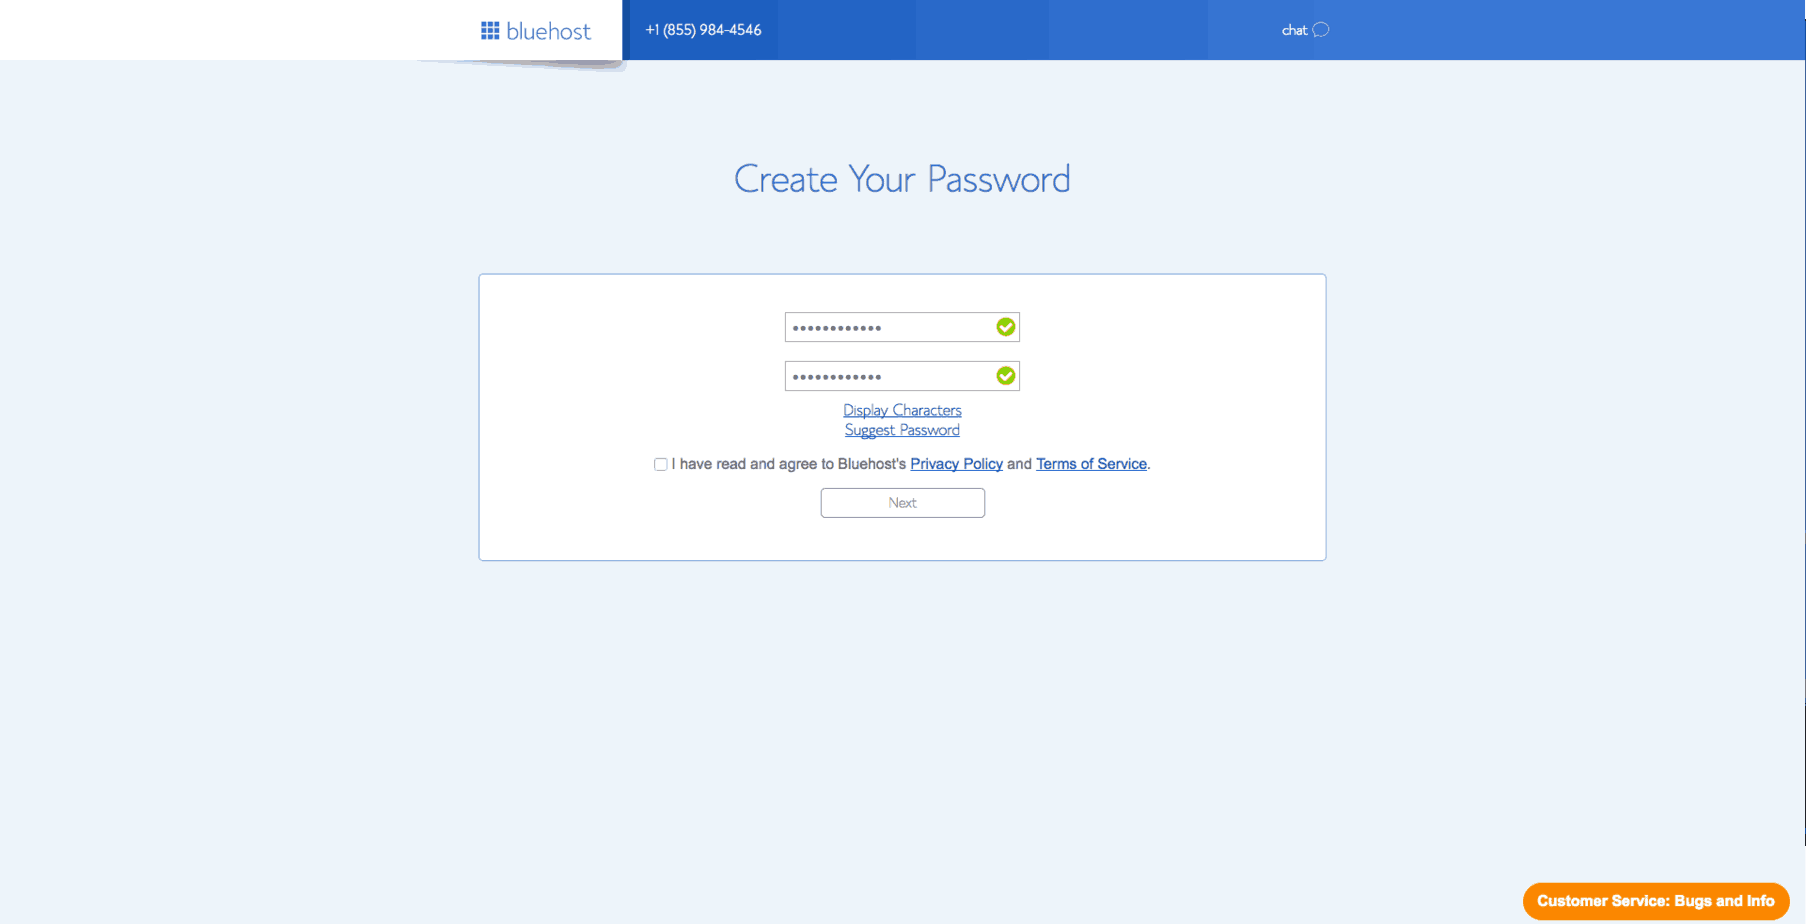 bluehost - Terms of Service